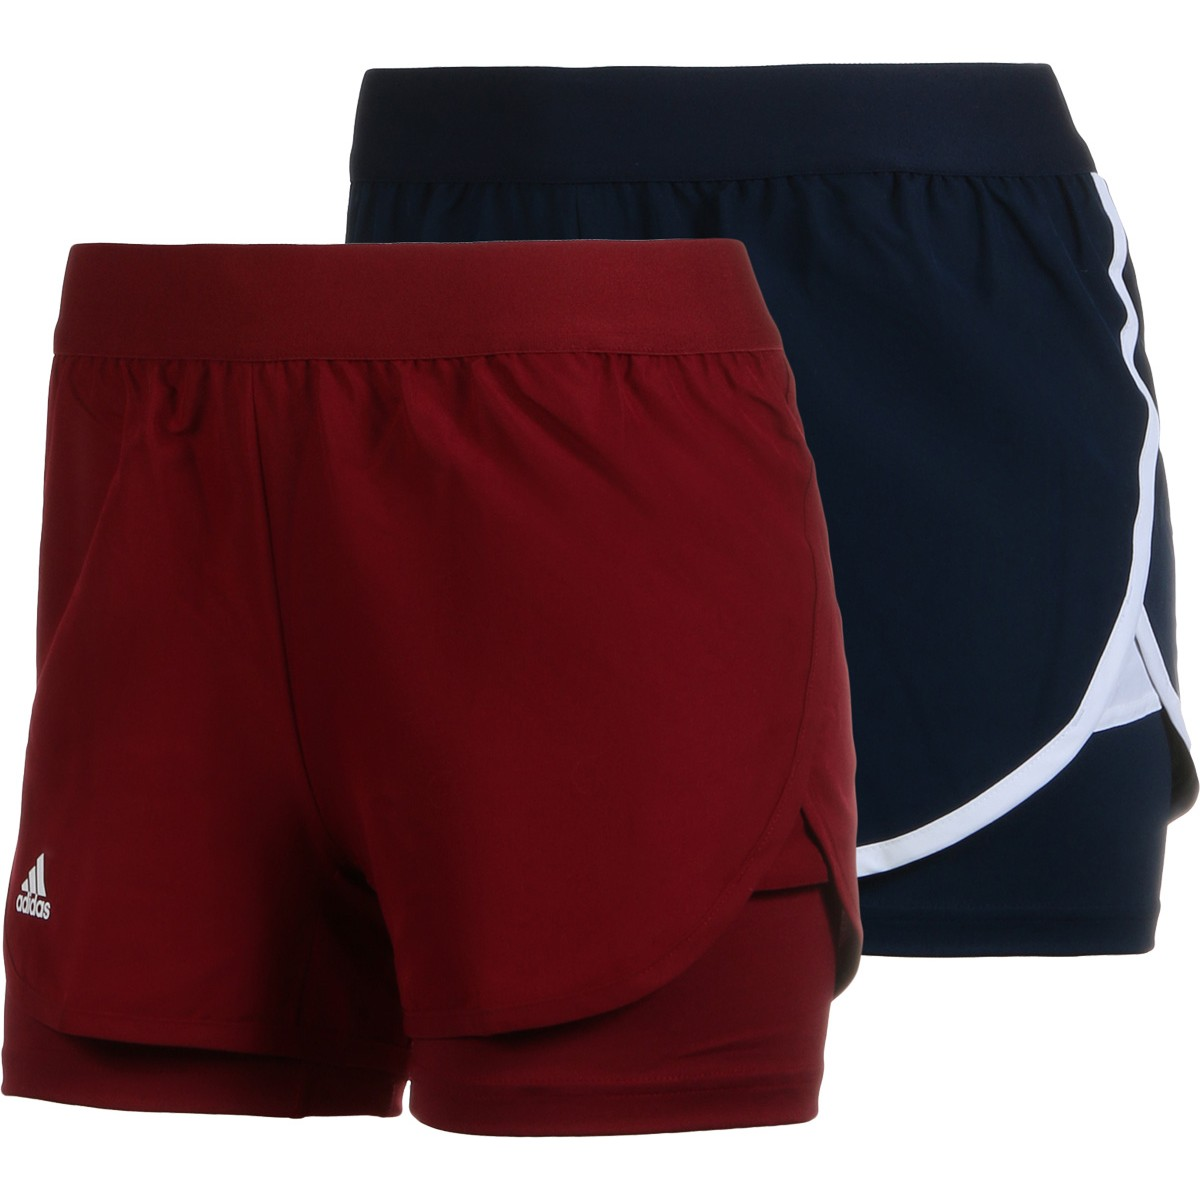 JUNIOR GIRLS' ADIDAS CLUB SHORTS